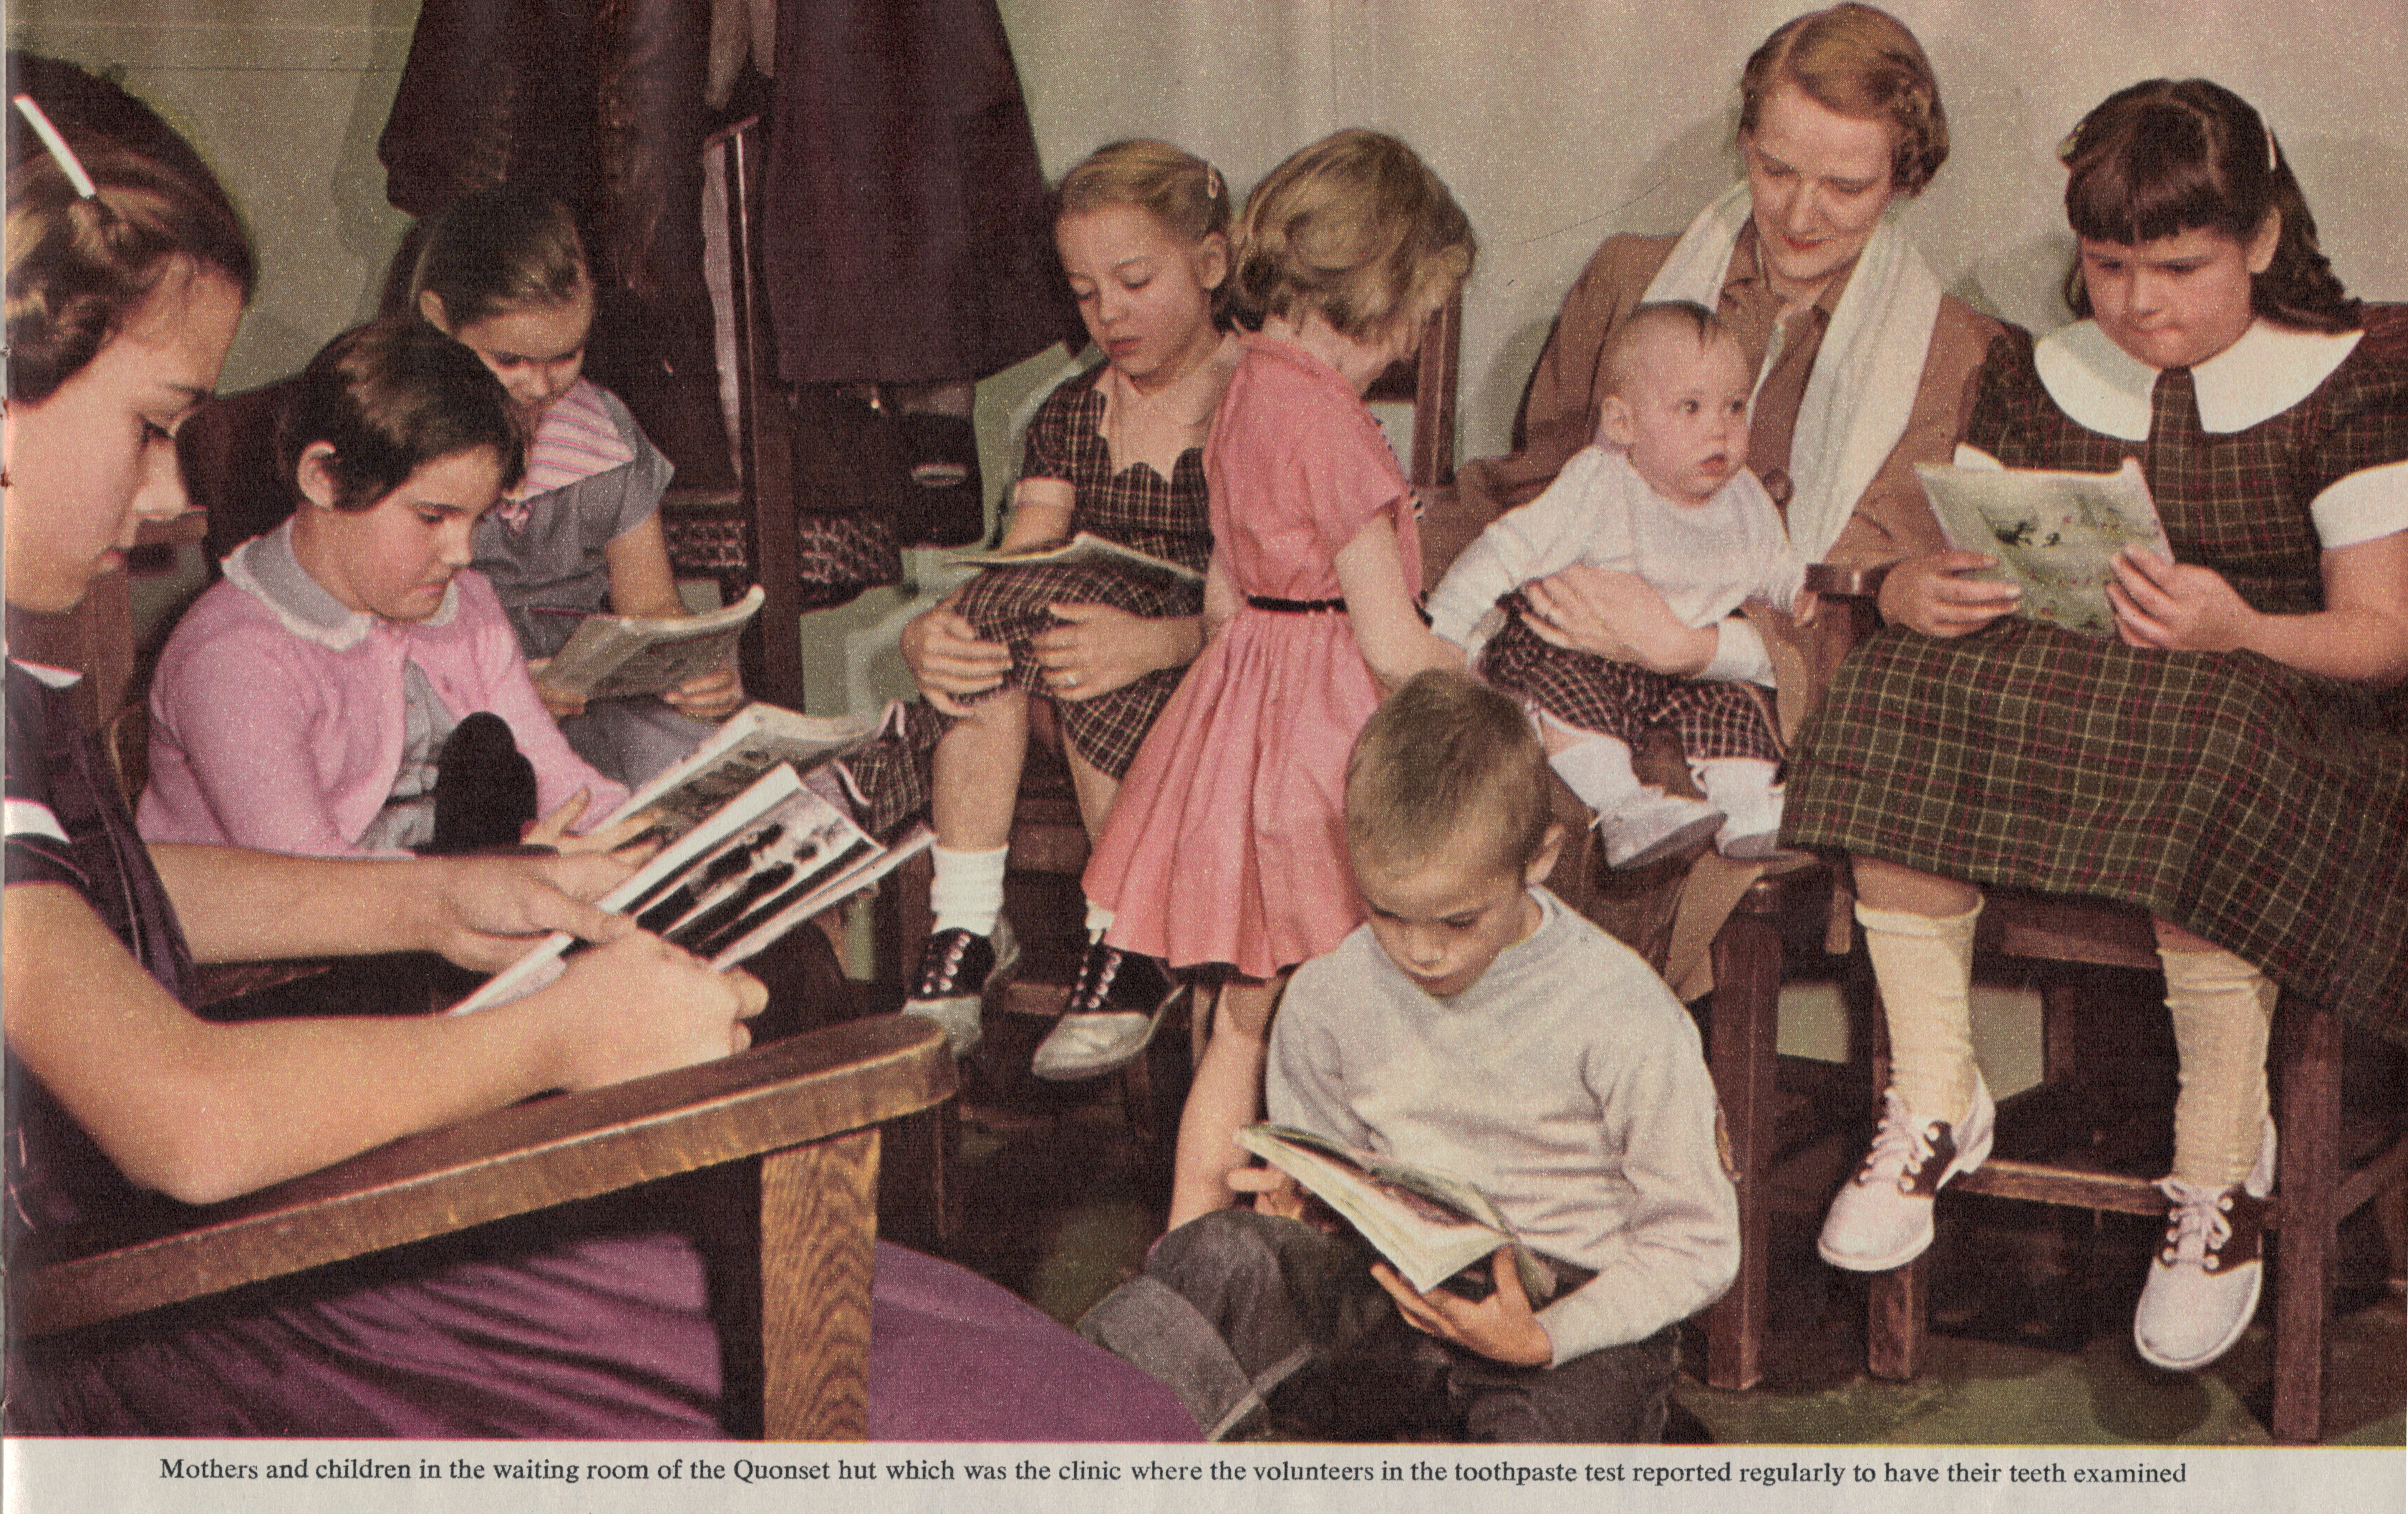 Color photograph from a 1950s magazine shows kids and parents waiting in a clinic. Five girls in clothes such as pink sweaters, Oxford shoes and checkered dresses sit in wooden chairs and read comic books and magazines. One boy on the floor reads a magazine. One girl in pink plays with a baby sitting on a mother's lap.